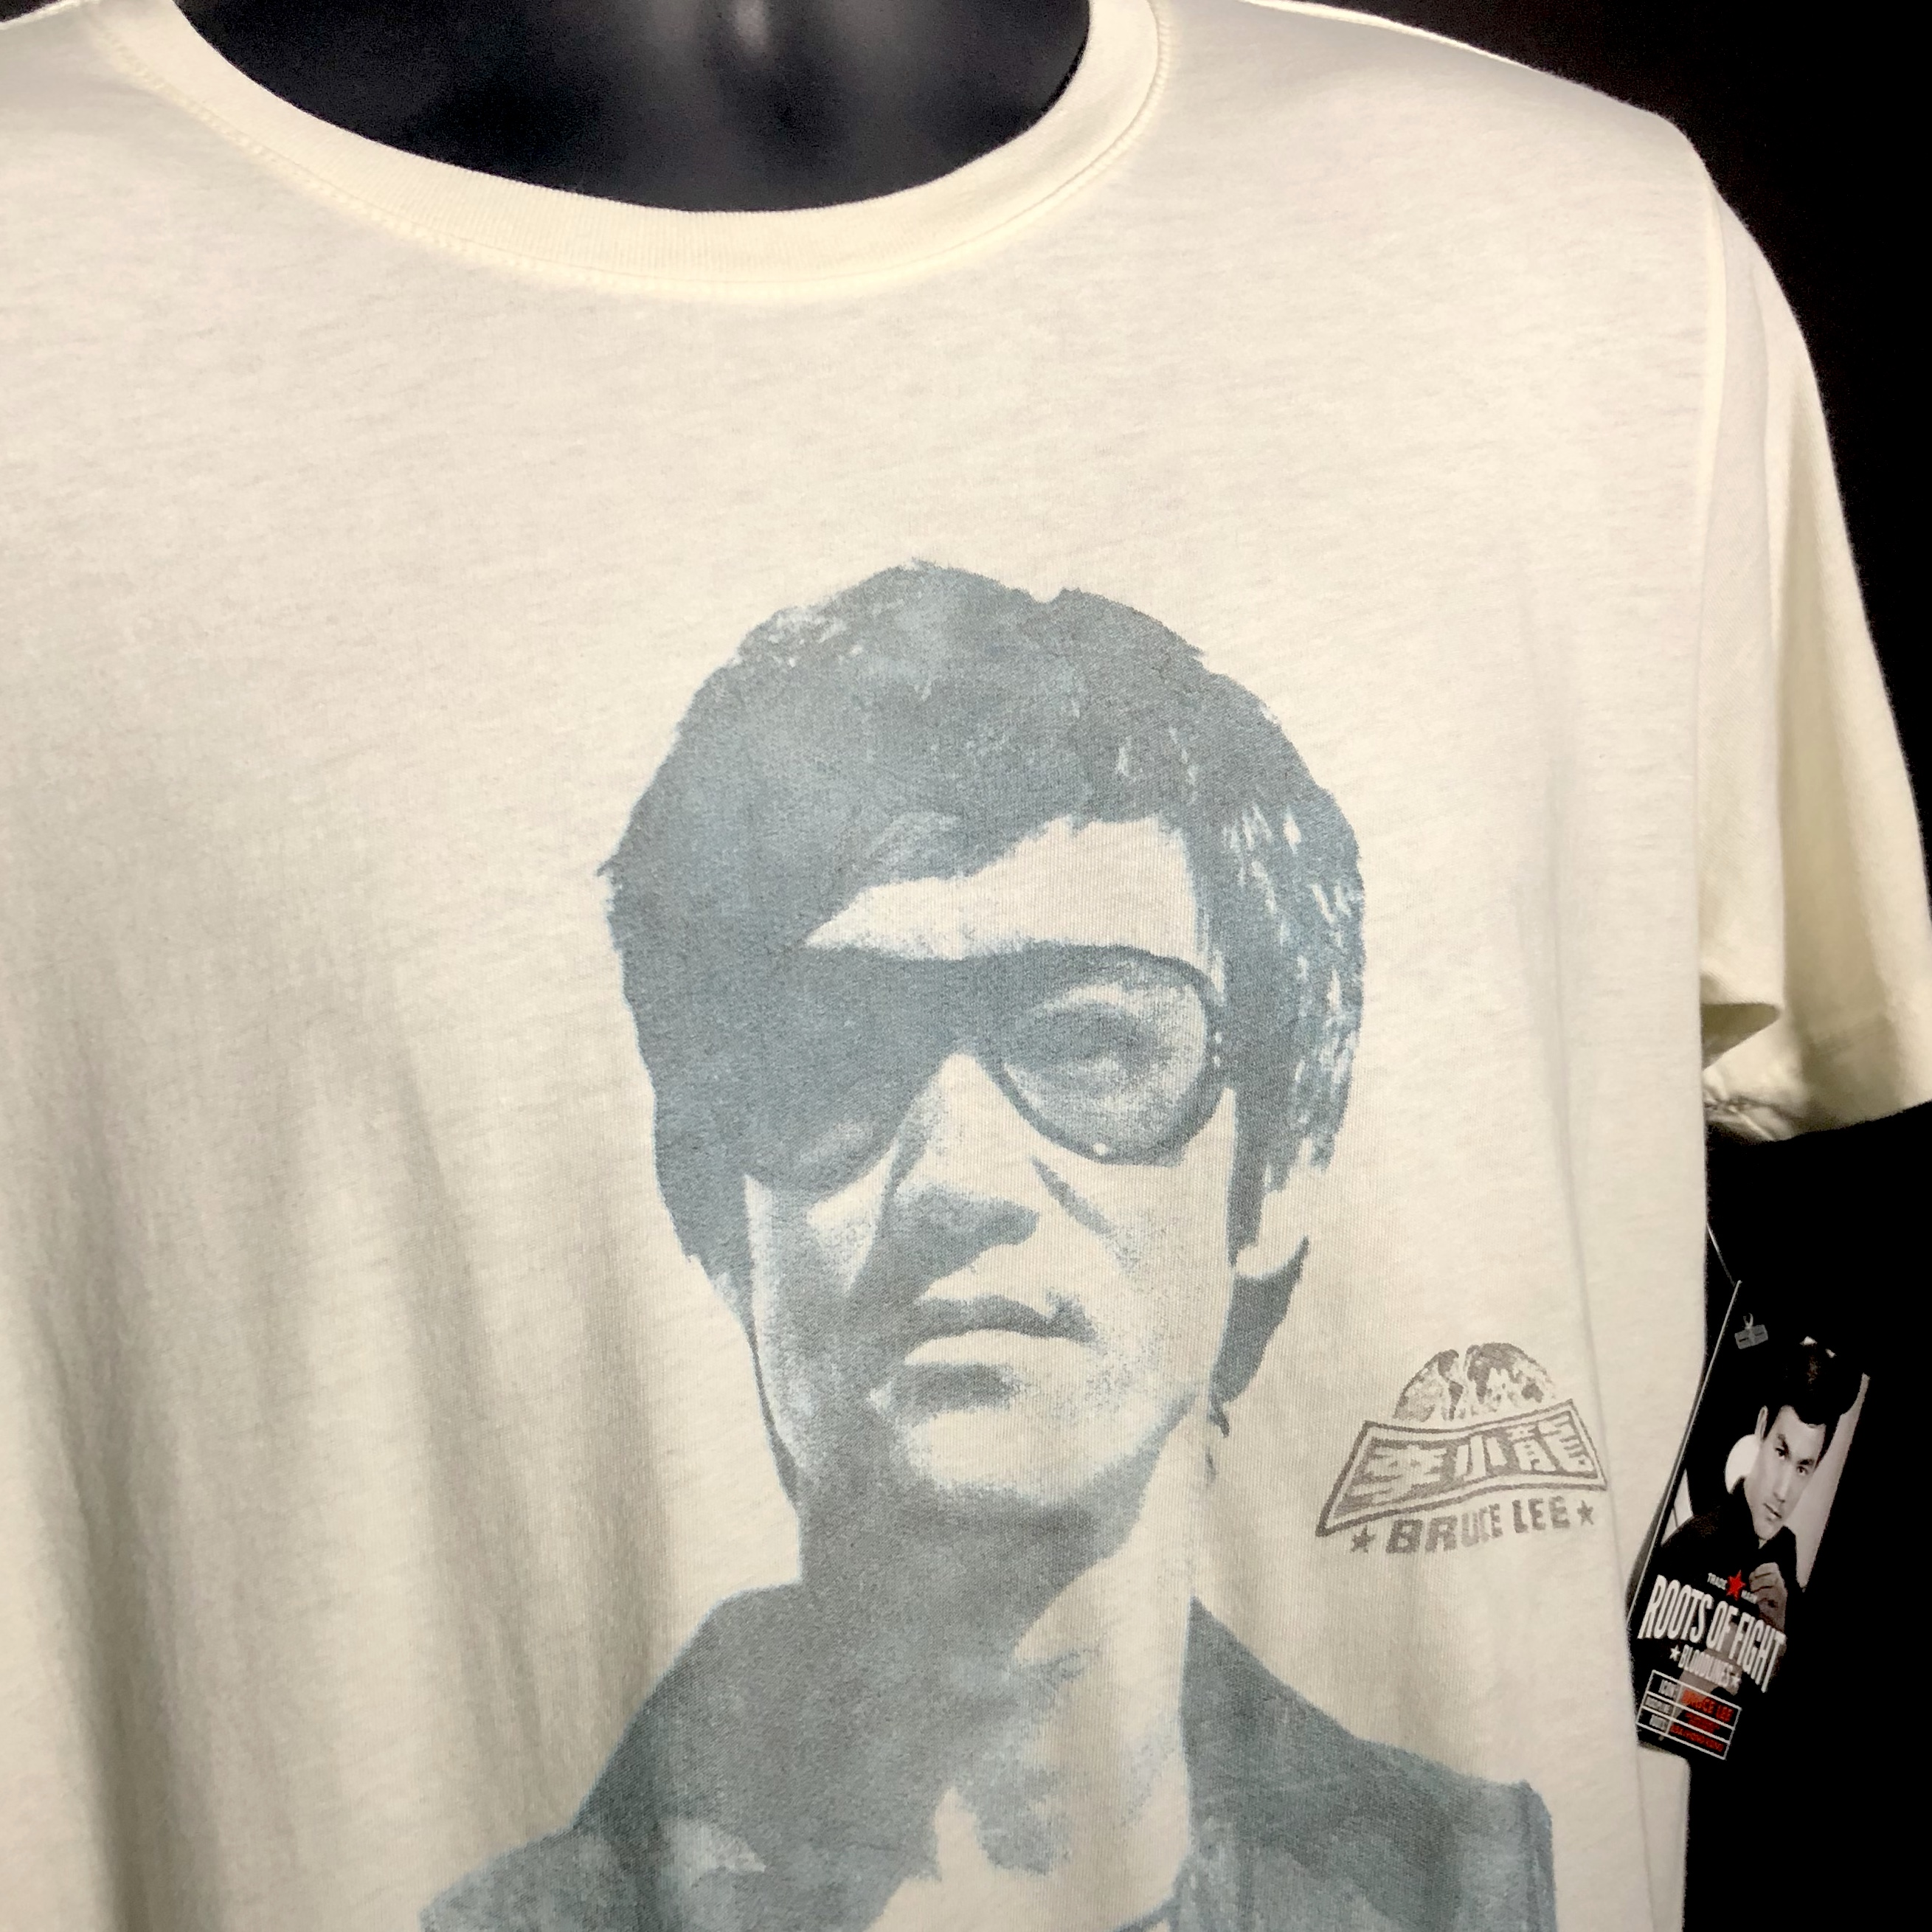 Bruce Lee Portrait T-shirt